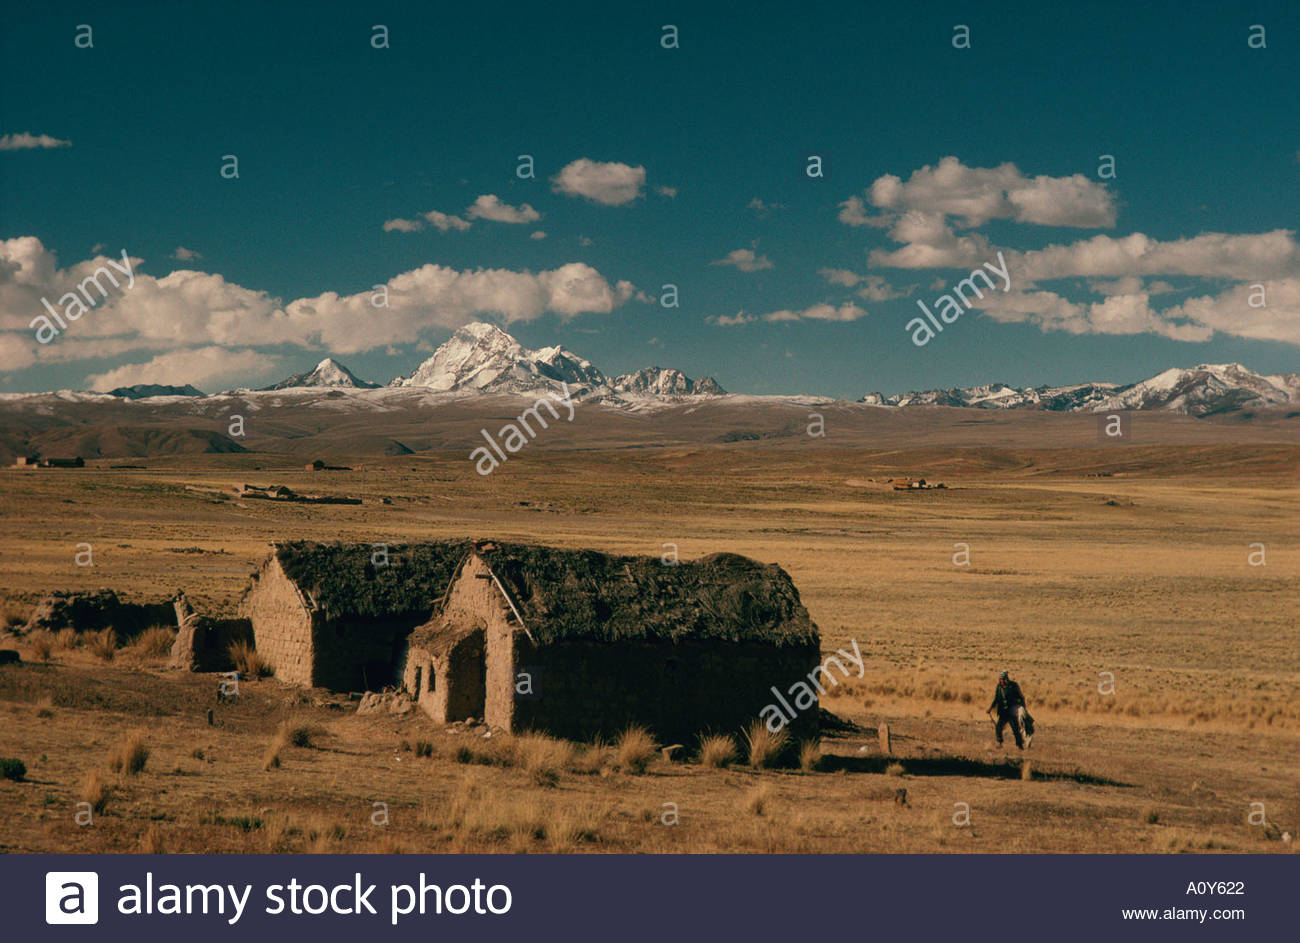 BOLIVIA near La Paz altiplano 13000 feet high thatch roof adobe houses and lonely Aymara peasant in background Cordillera Real - Stock Image